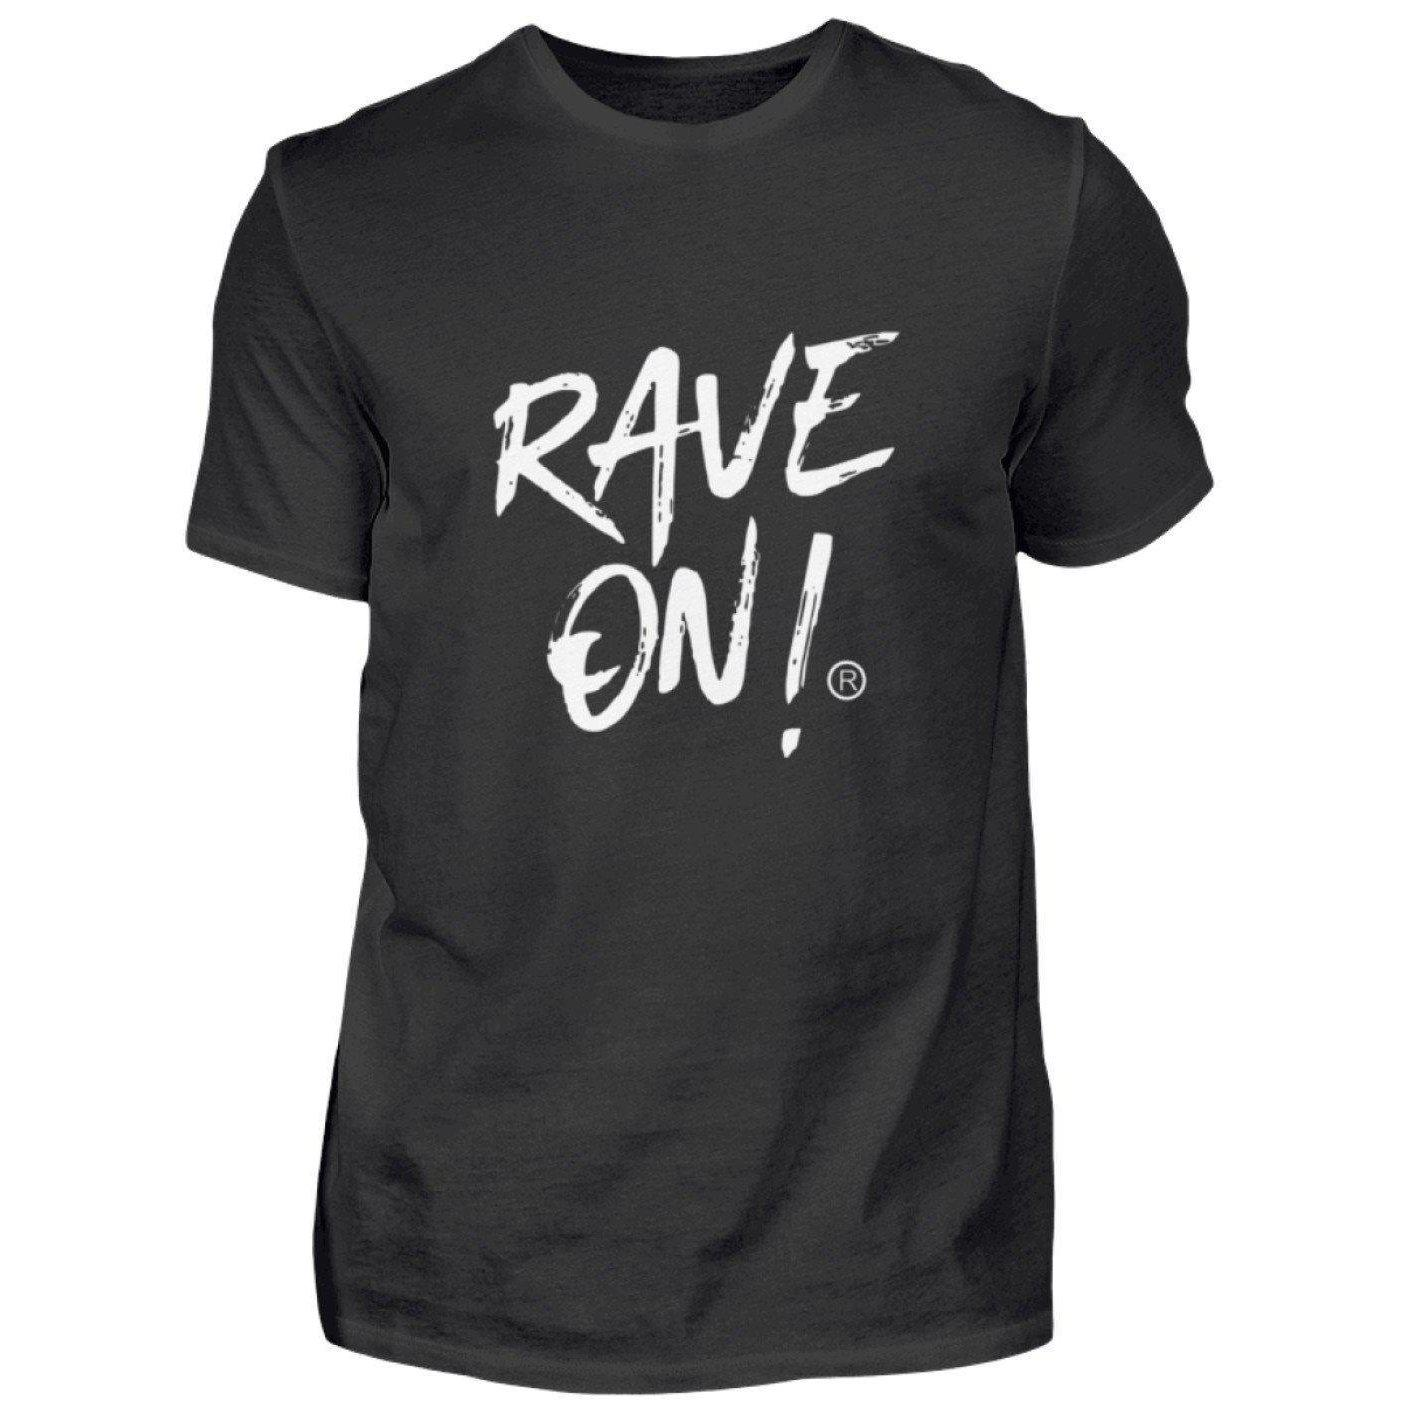 RAVE ON!® Black Collection - Men's Shirt Men's Basic T-Shirt Black / S - Rave On!® the club & techno scene shop for cool young fashion streetwear style & fashion outfits + sexy festival 420 stuff